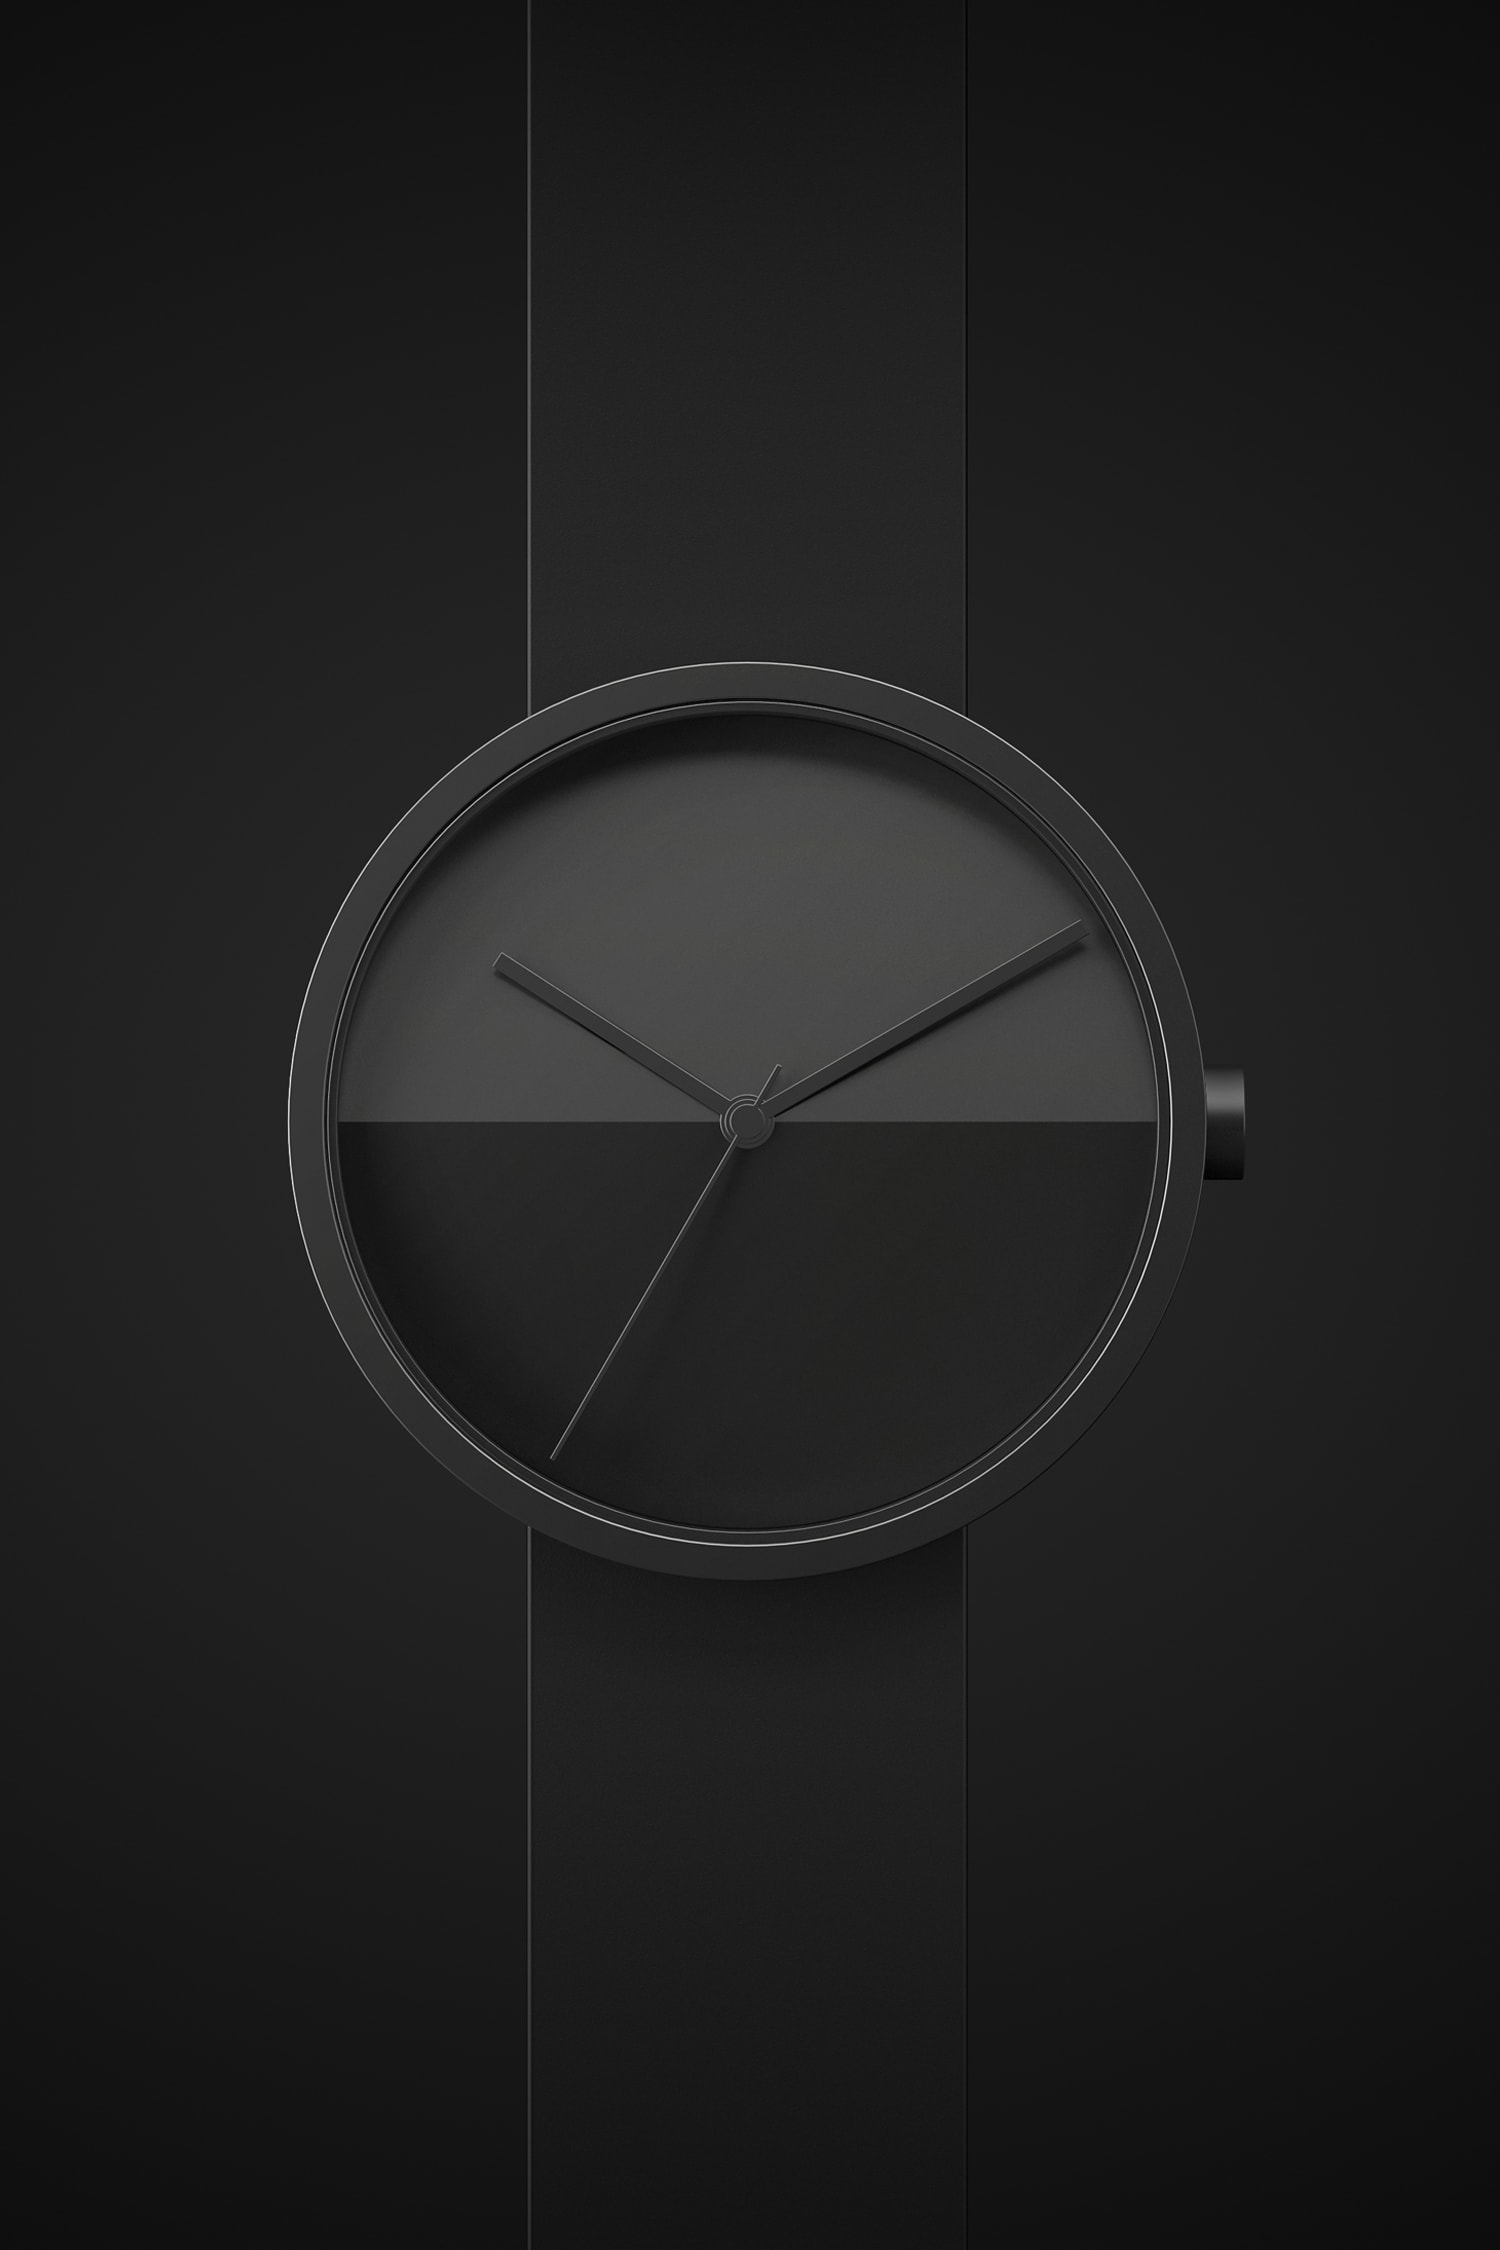 Front view of the Horizon watch face in black on a black background.